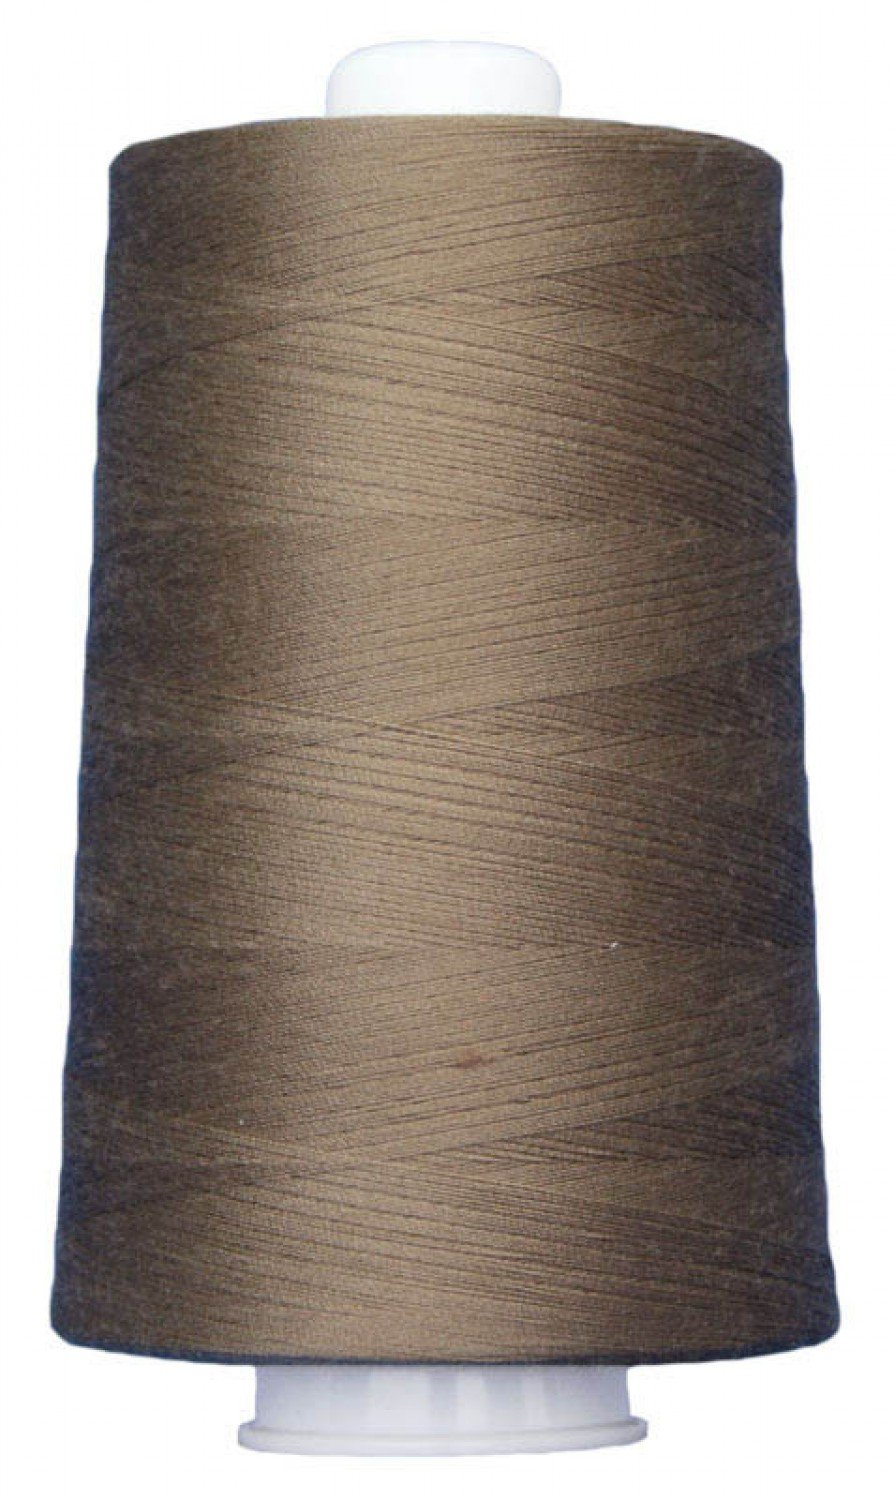 OMNI Polyester Thread 40 wt 6000 yds 3012 Dark Tan by Superior